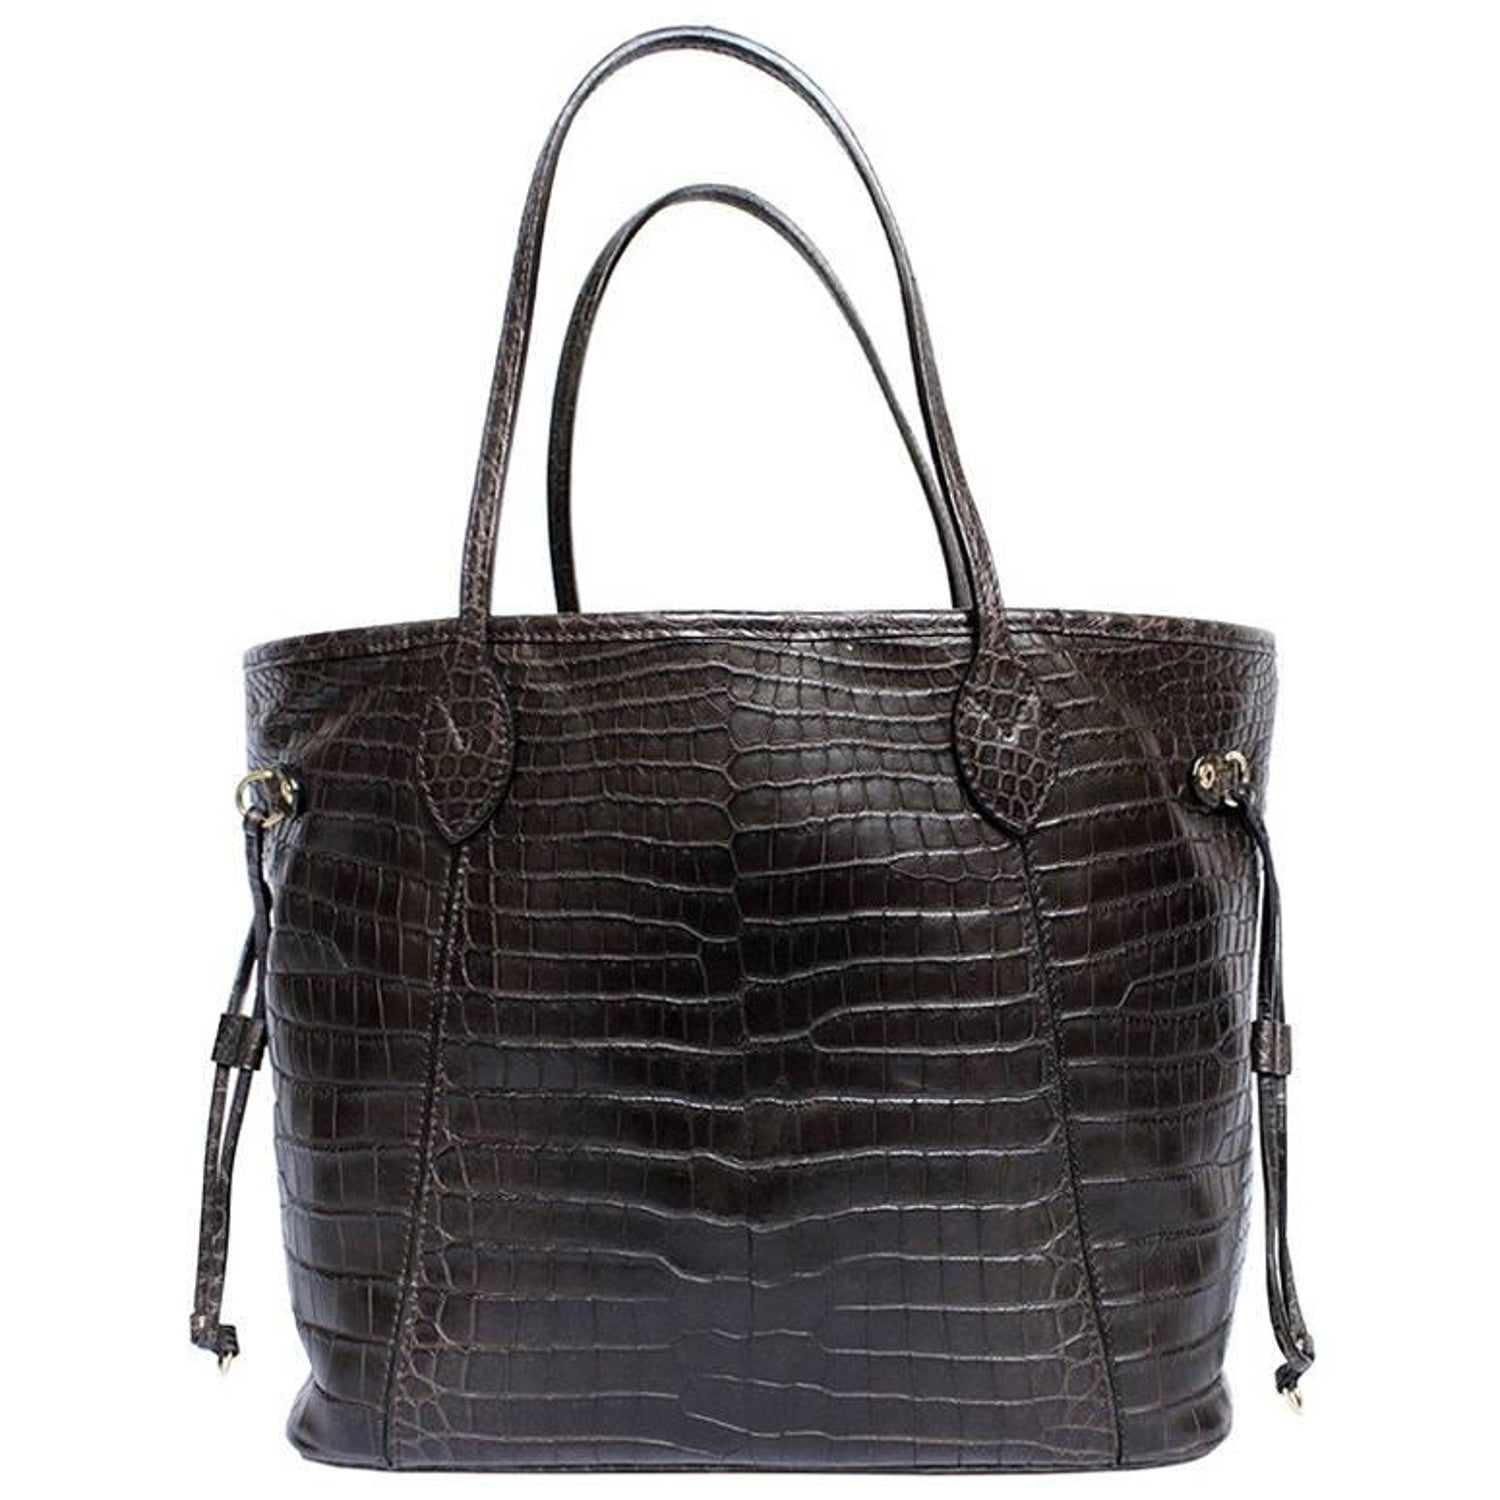 136e5f5507e7 LOUIS VUITTON  Neverfull  bag in Soft Tobacco Alligator Leather For Sale at  1stdibs